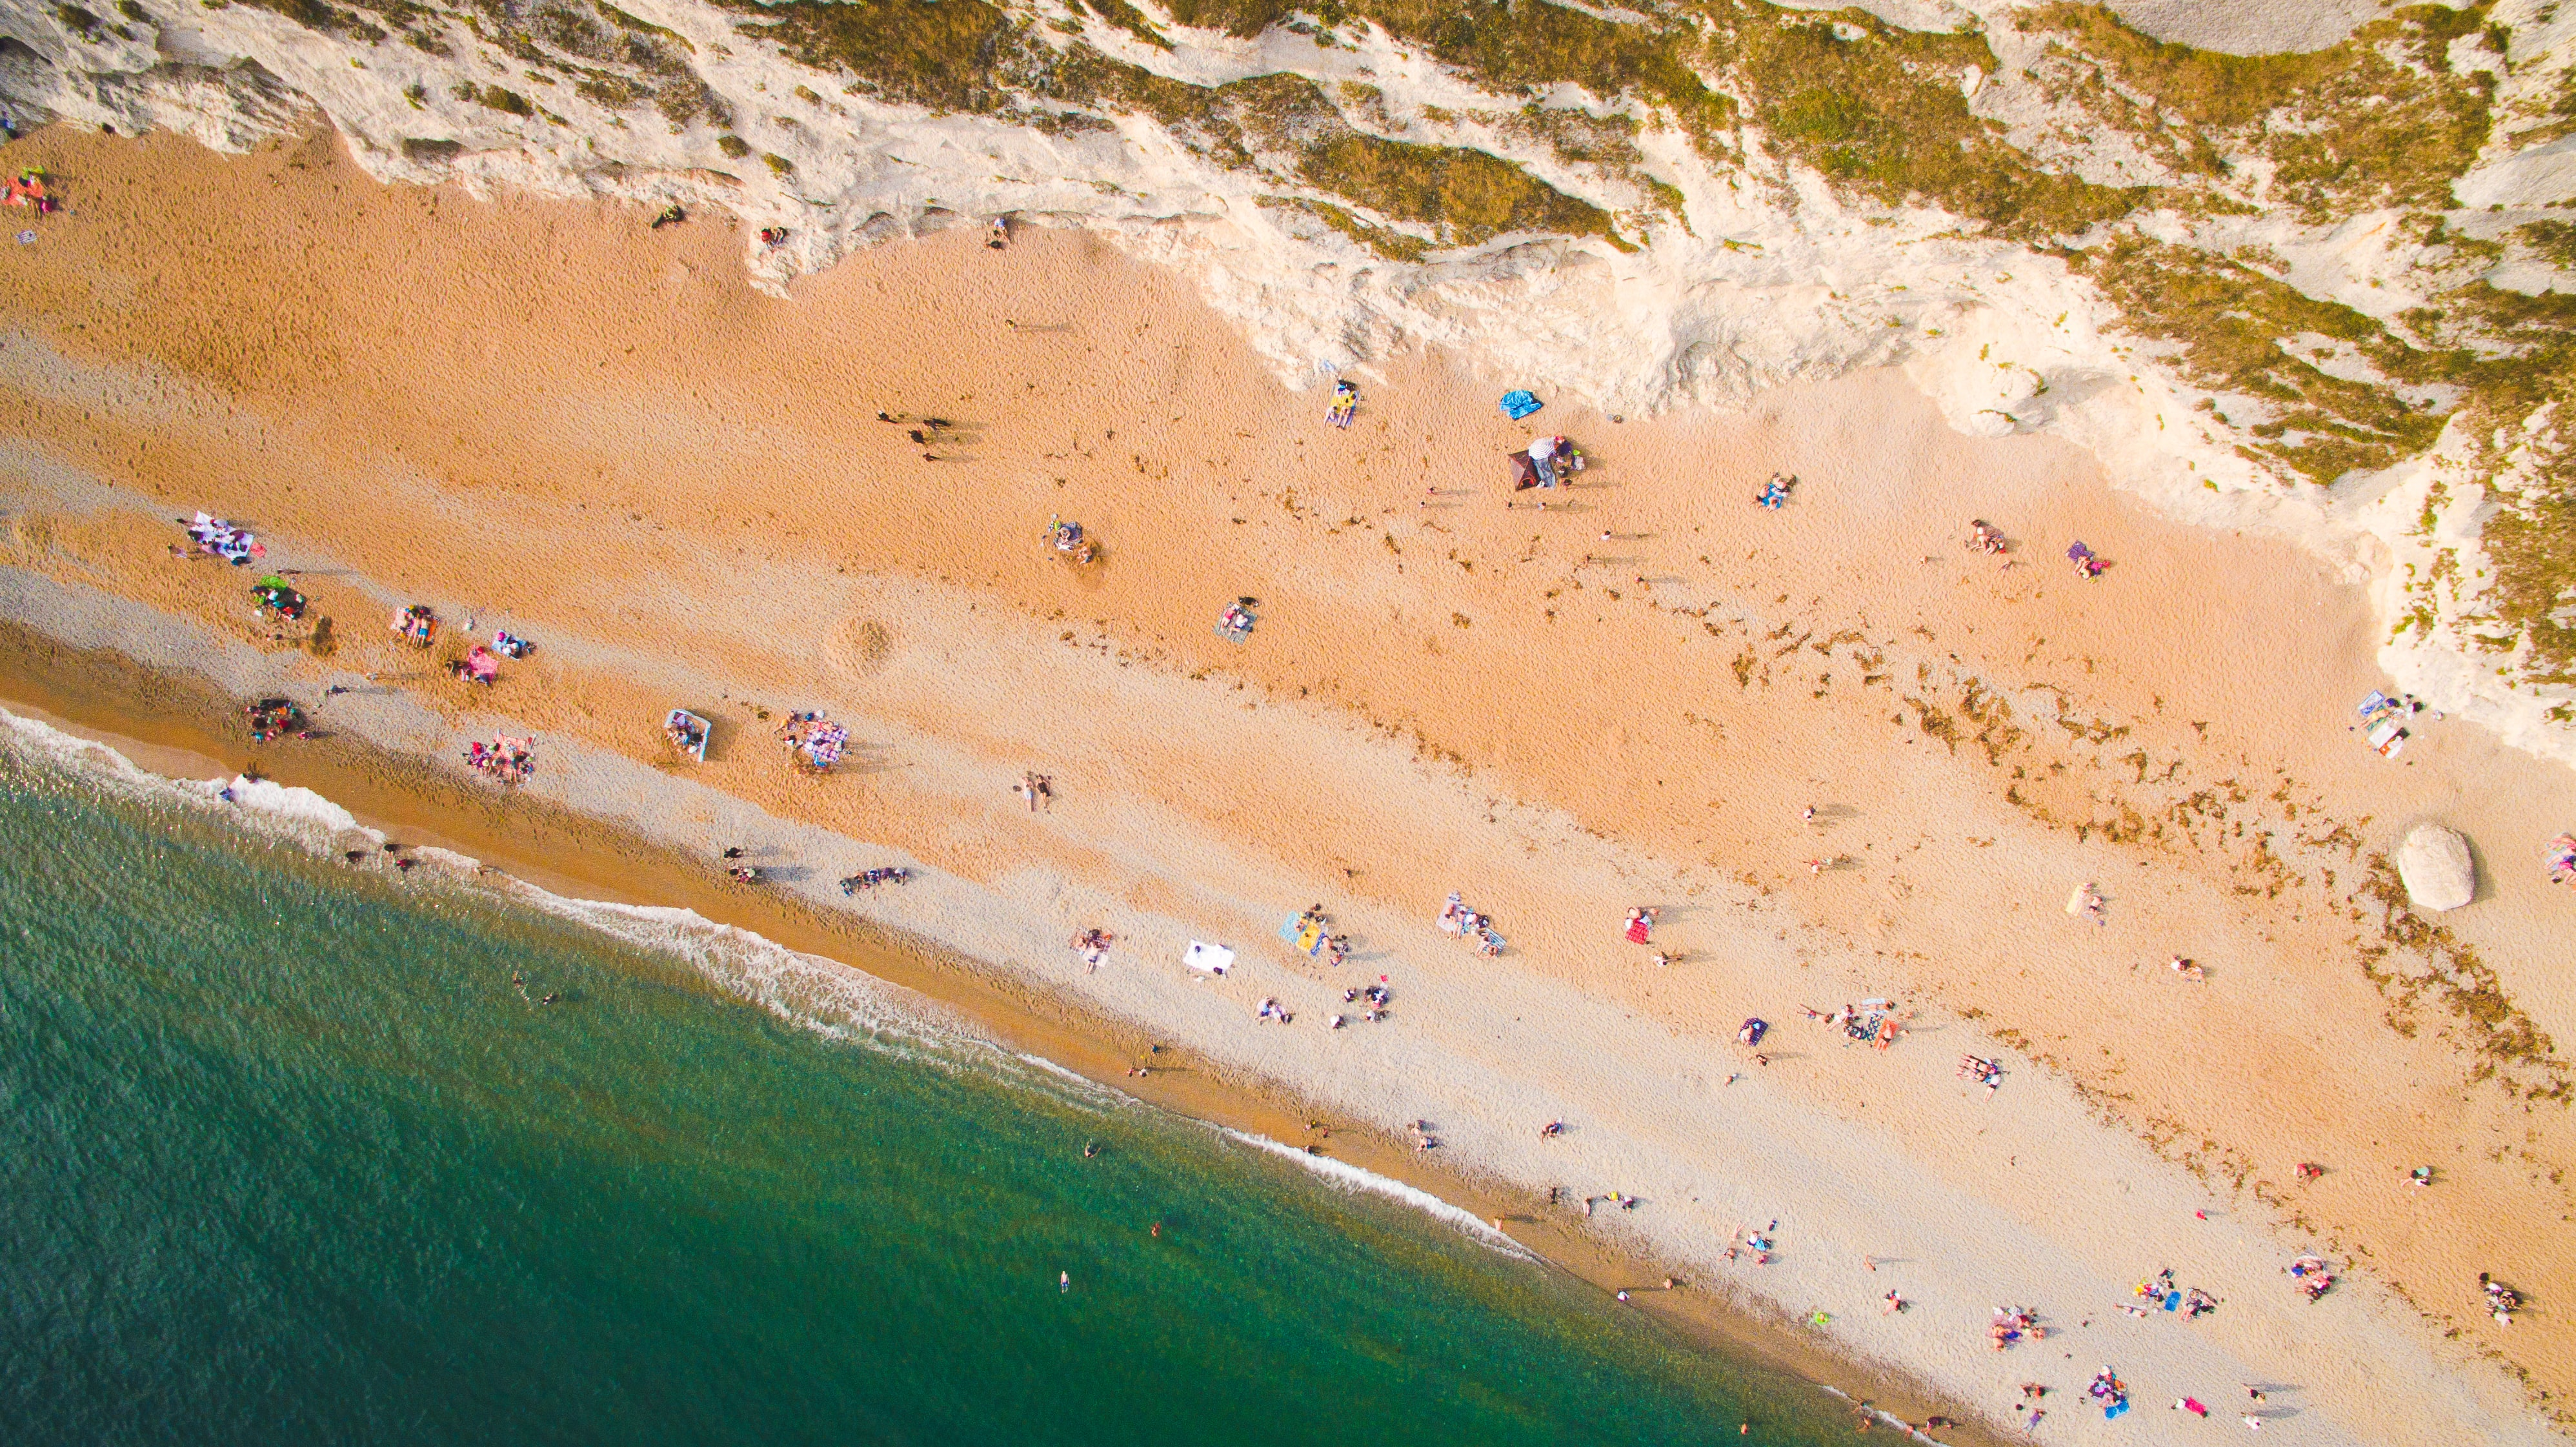 aerial view of people by the beach during daytime